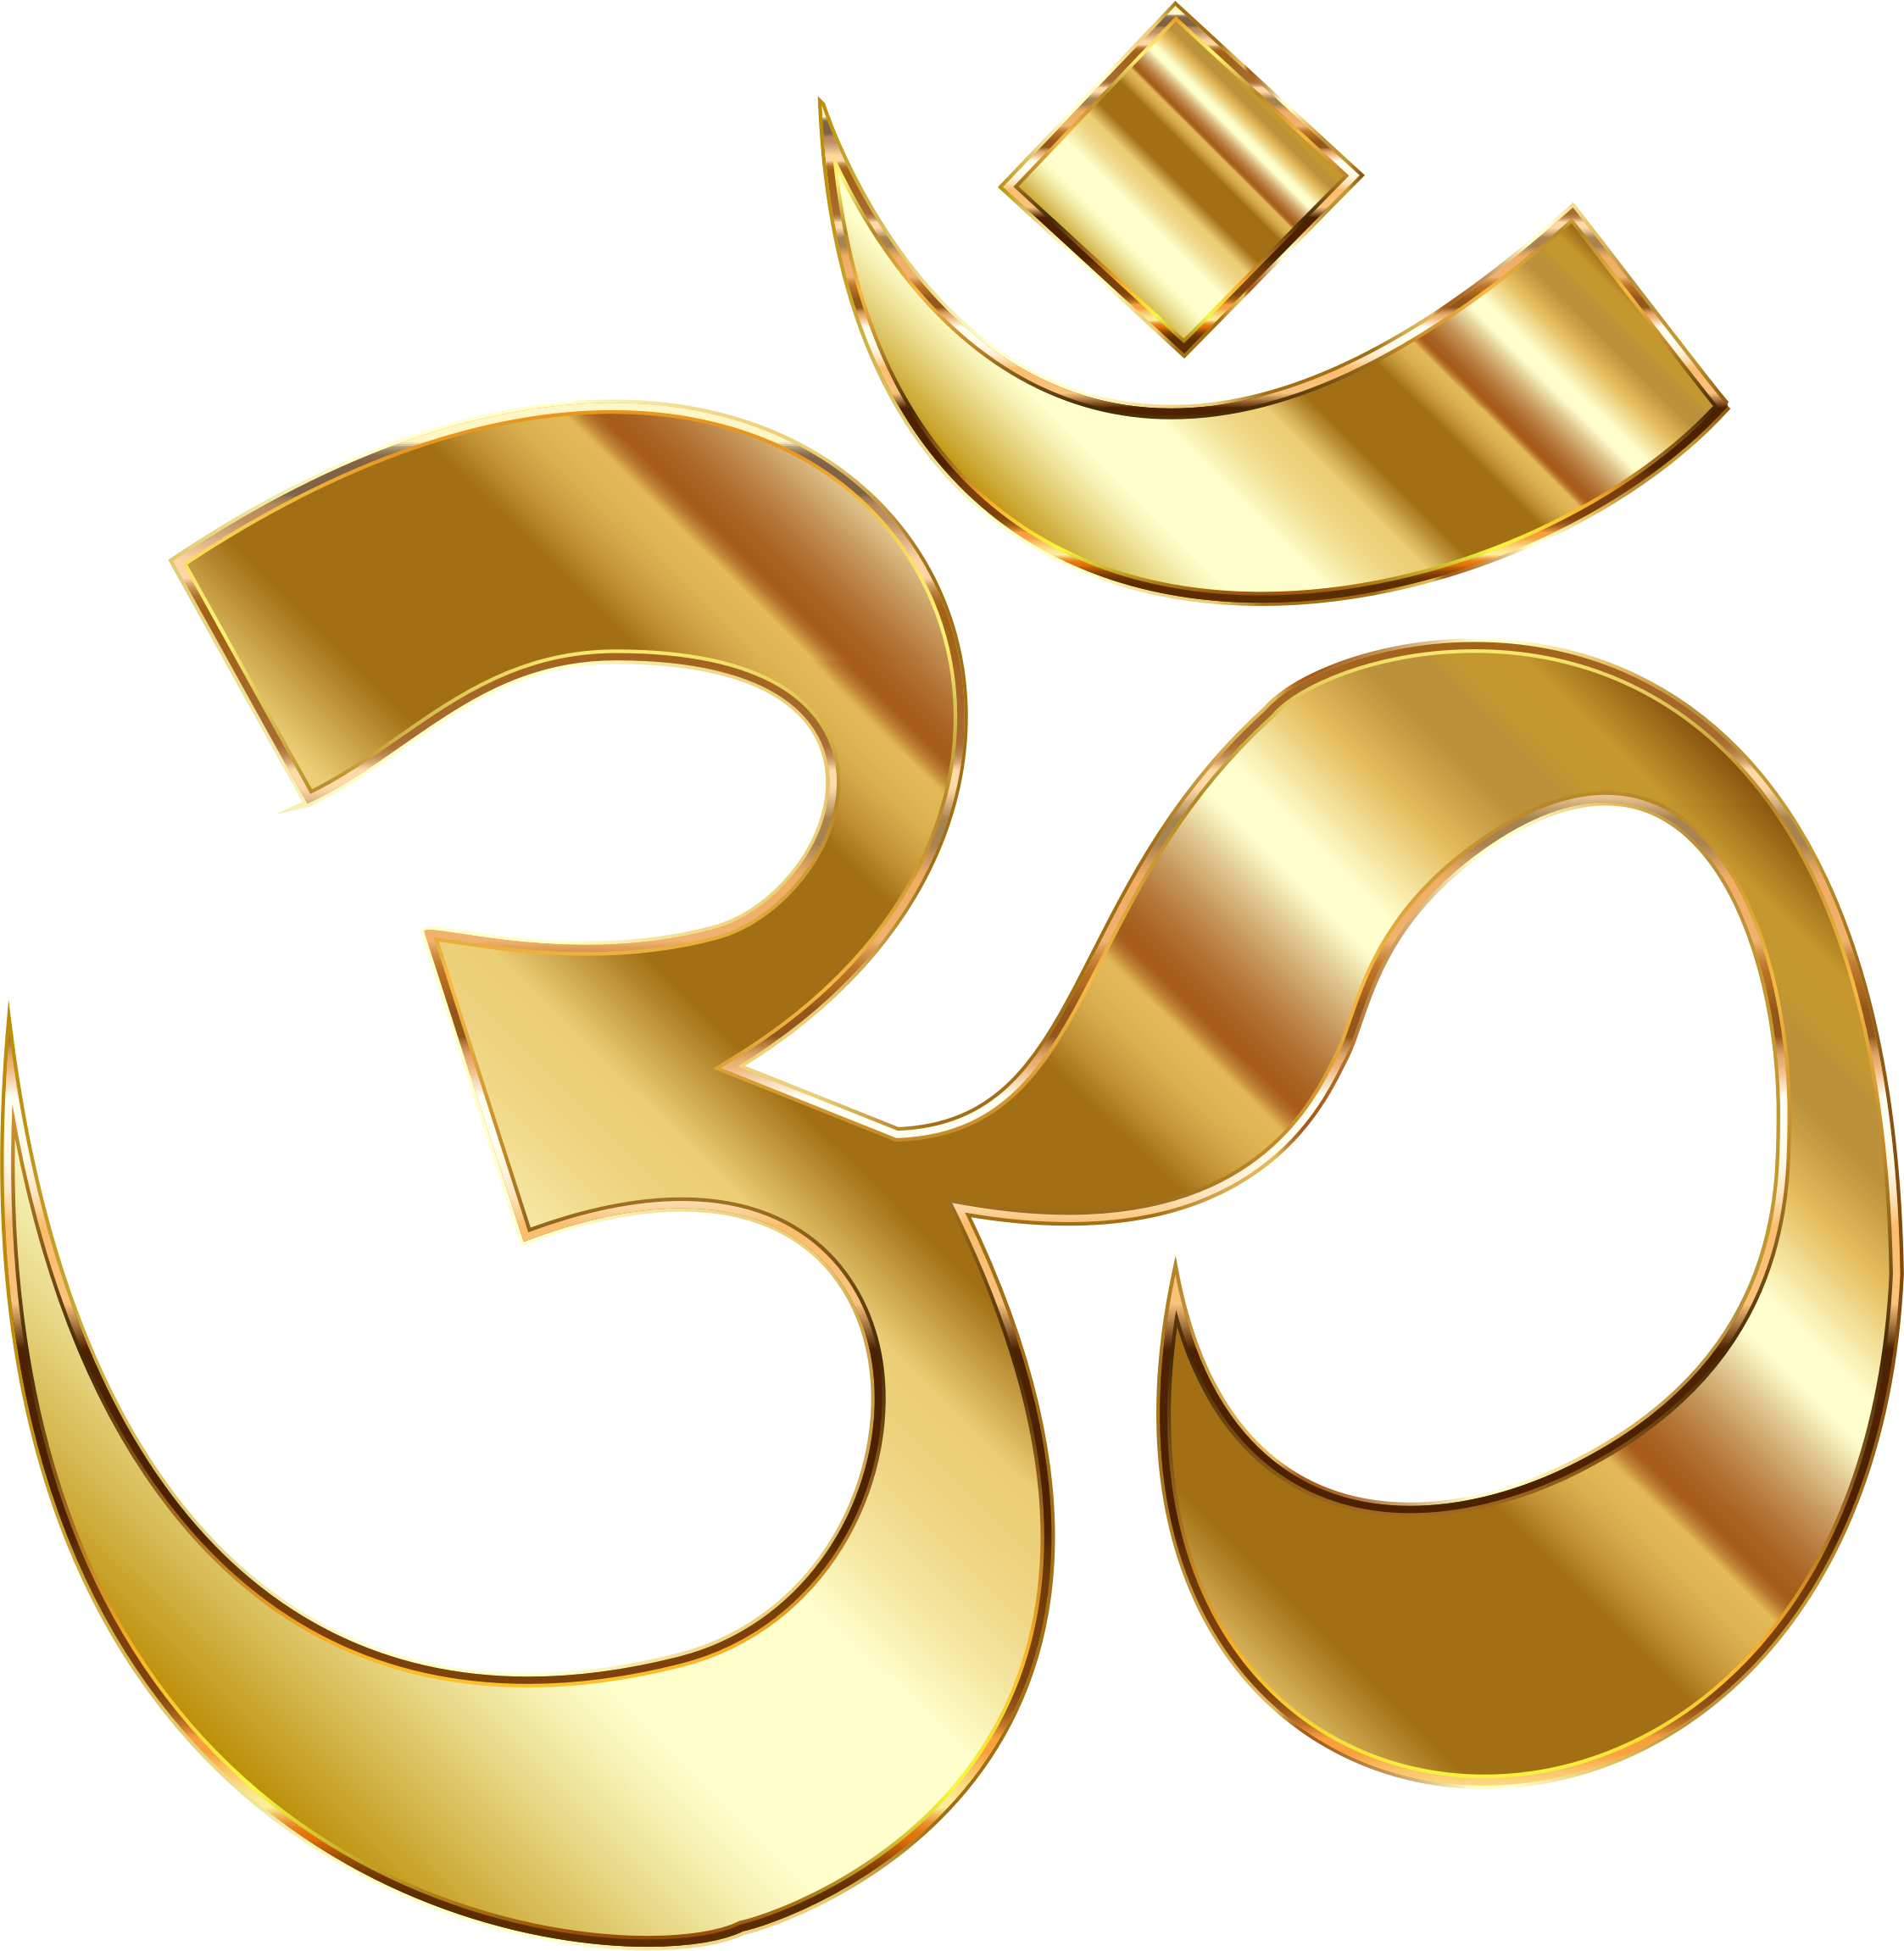 Yoga symbol and om png. Clipart golden no background